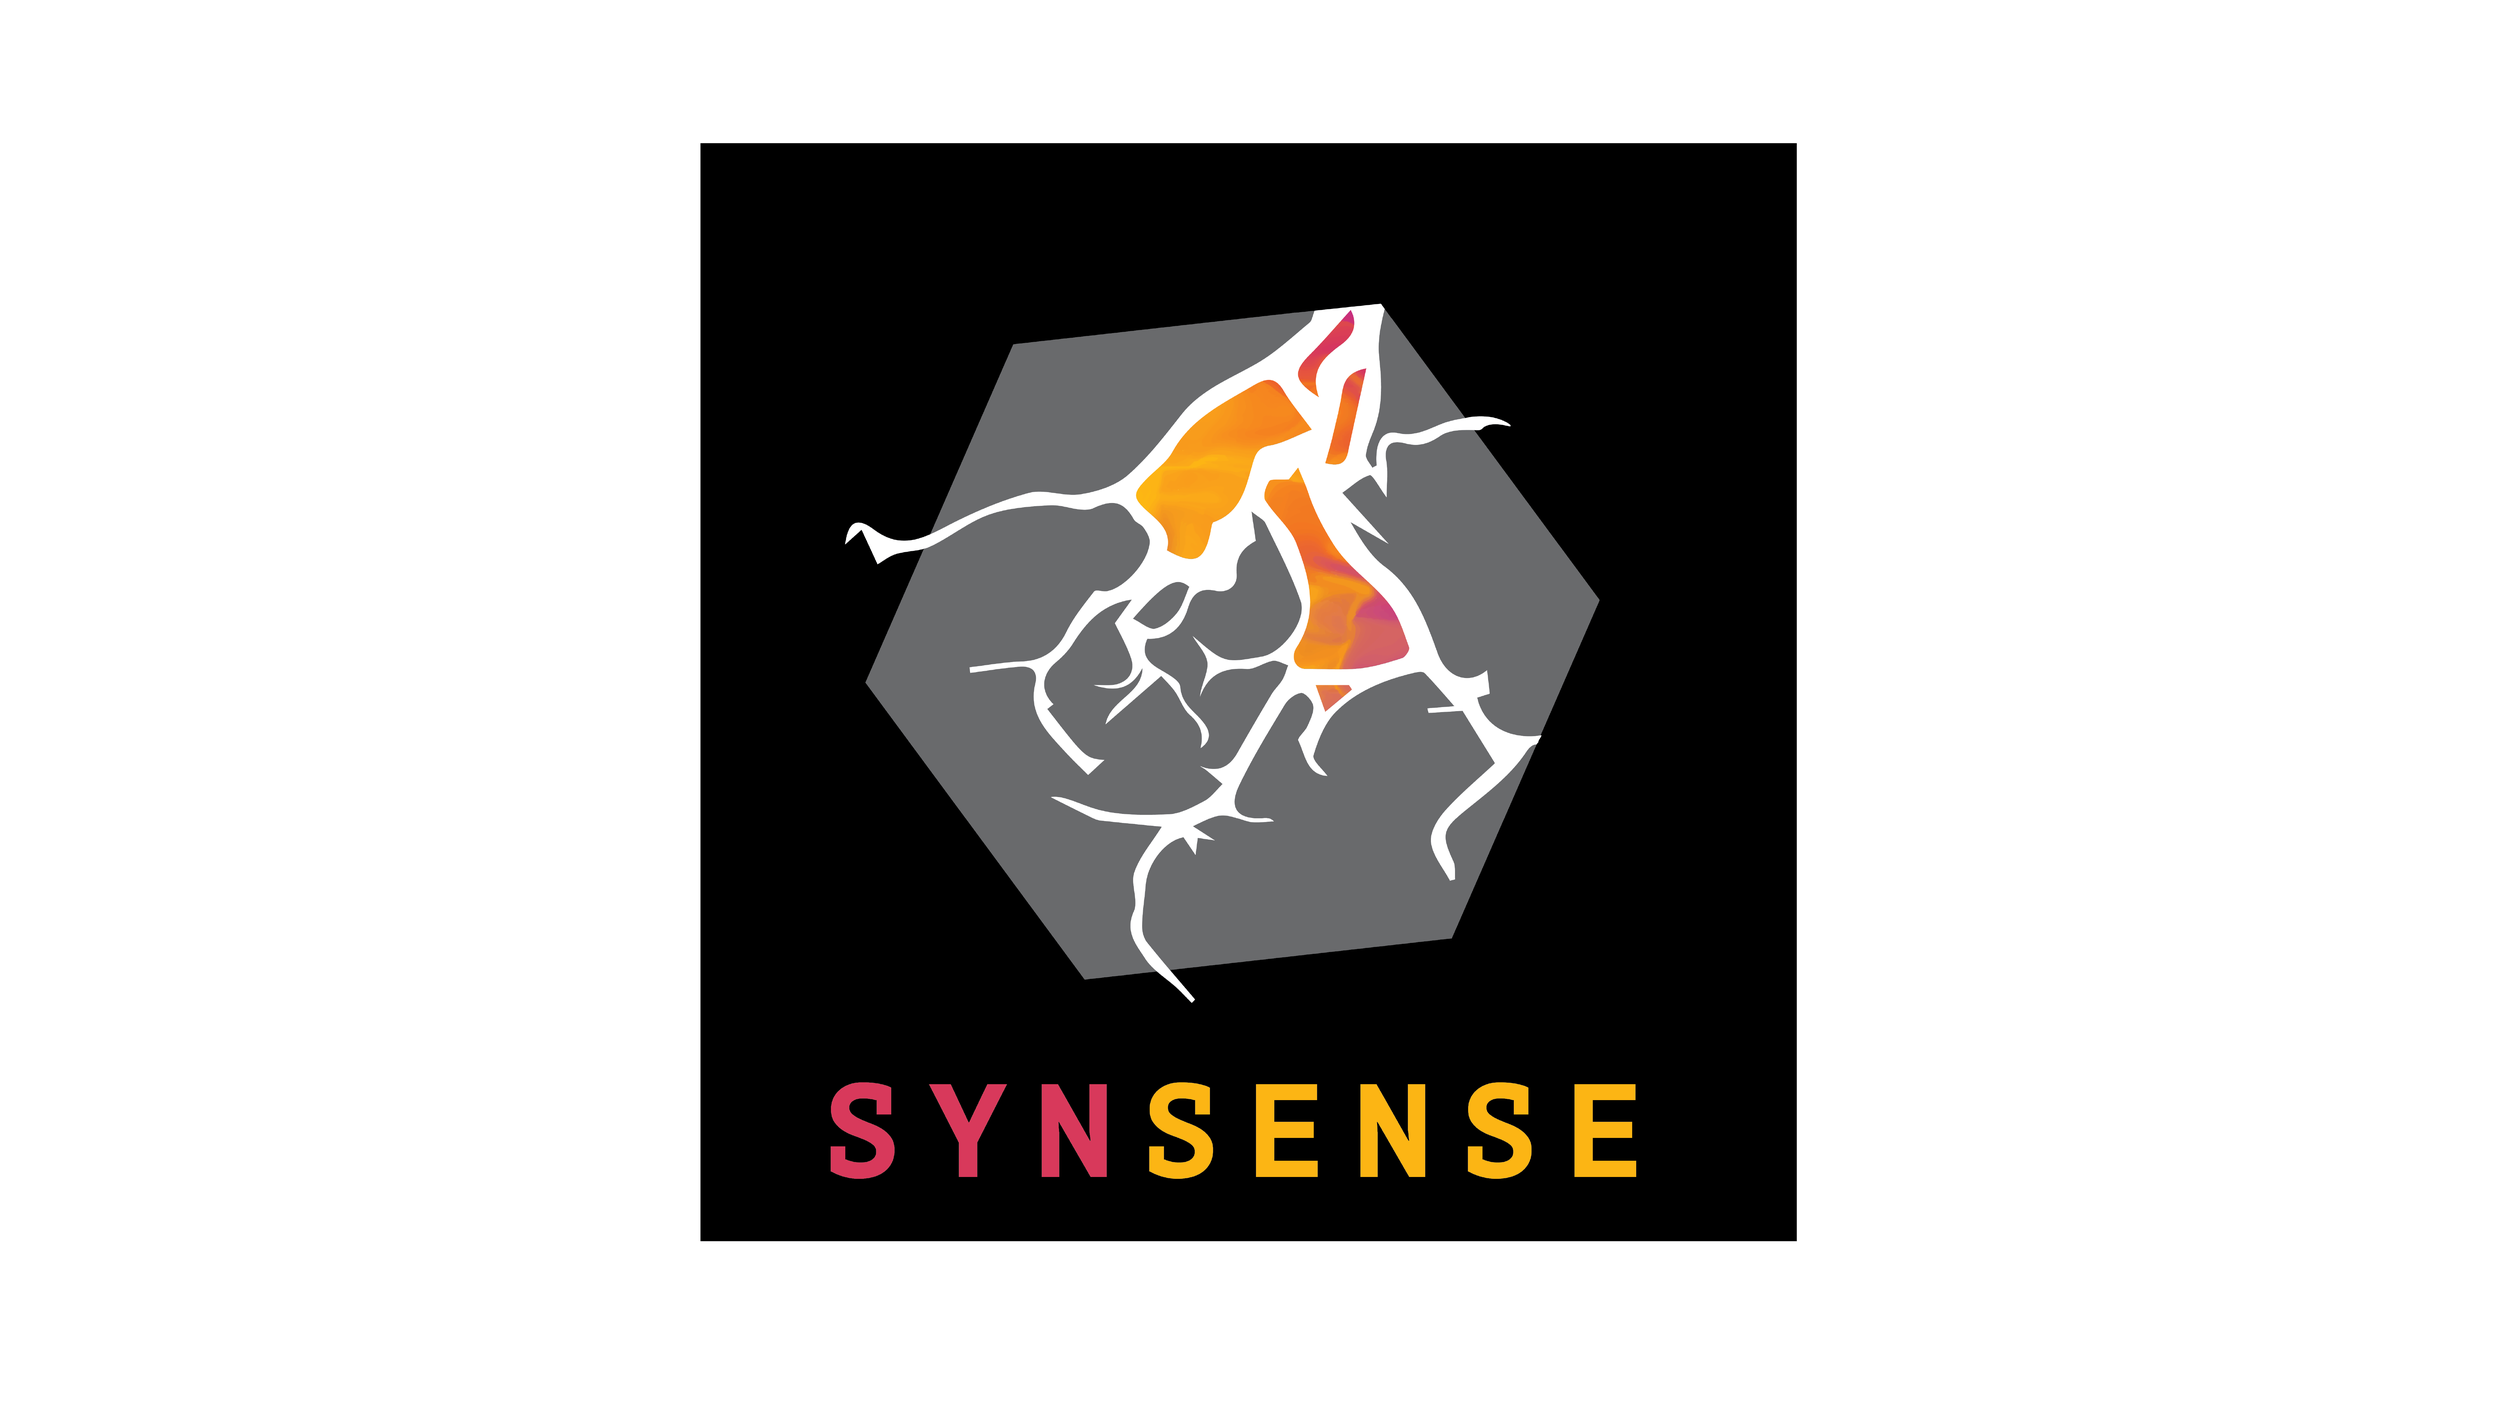 Synsense-01.png